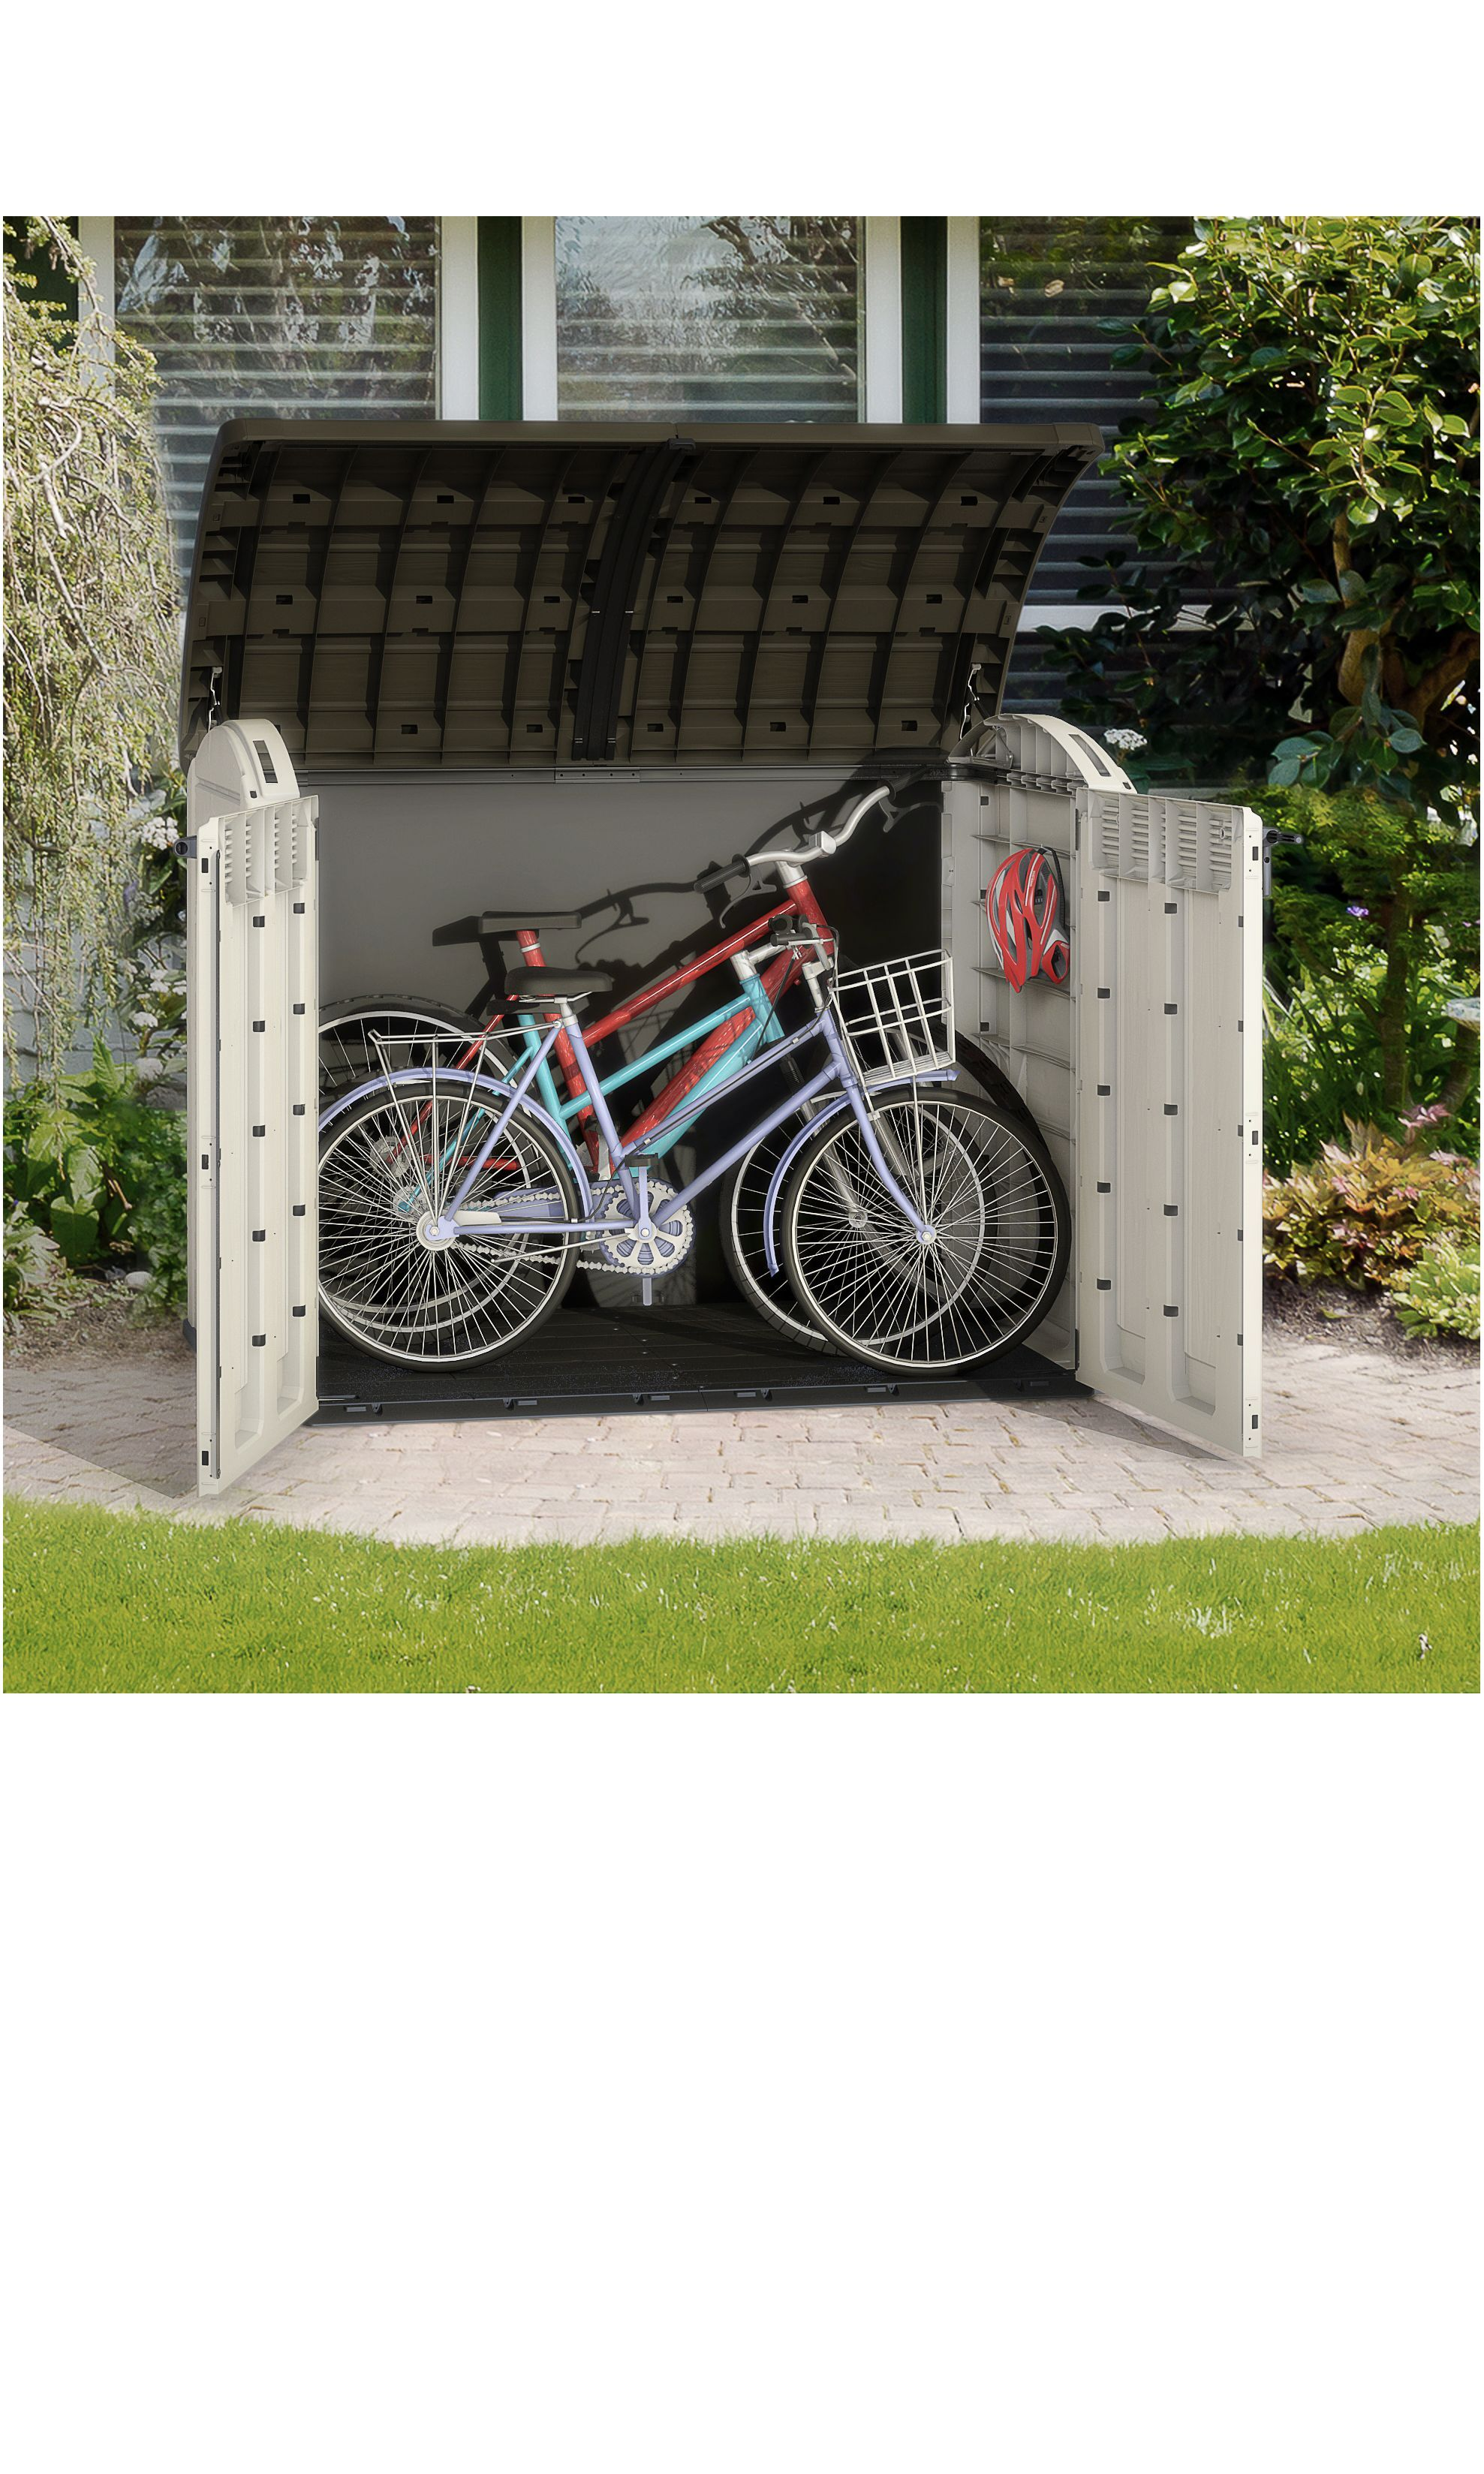 Store It Out Ultra Wood Effect Barrel Plastic Bike Store B Q For All Your Home And Garden Supplies And Adv Outside Bike Storage Garden Storage Shed Bike Shed